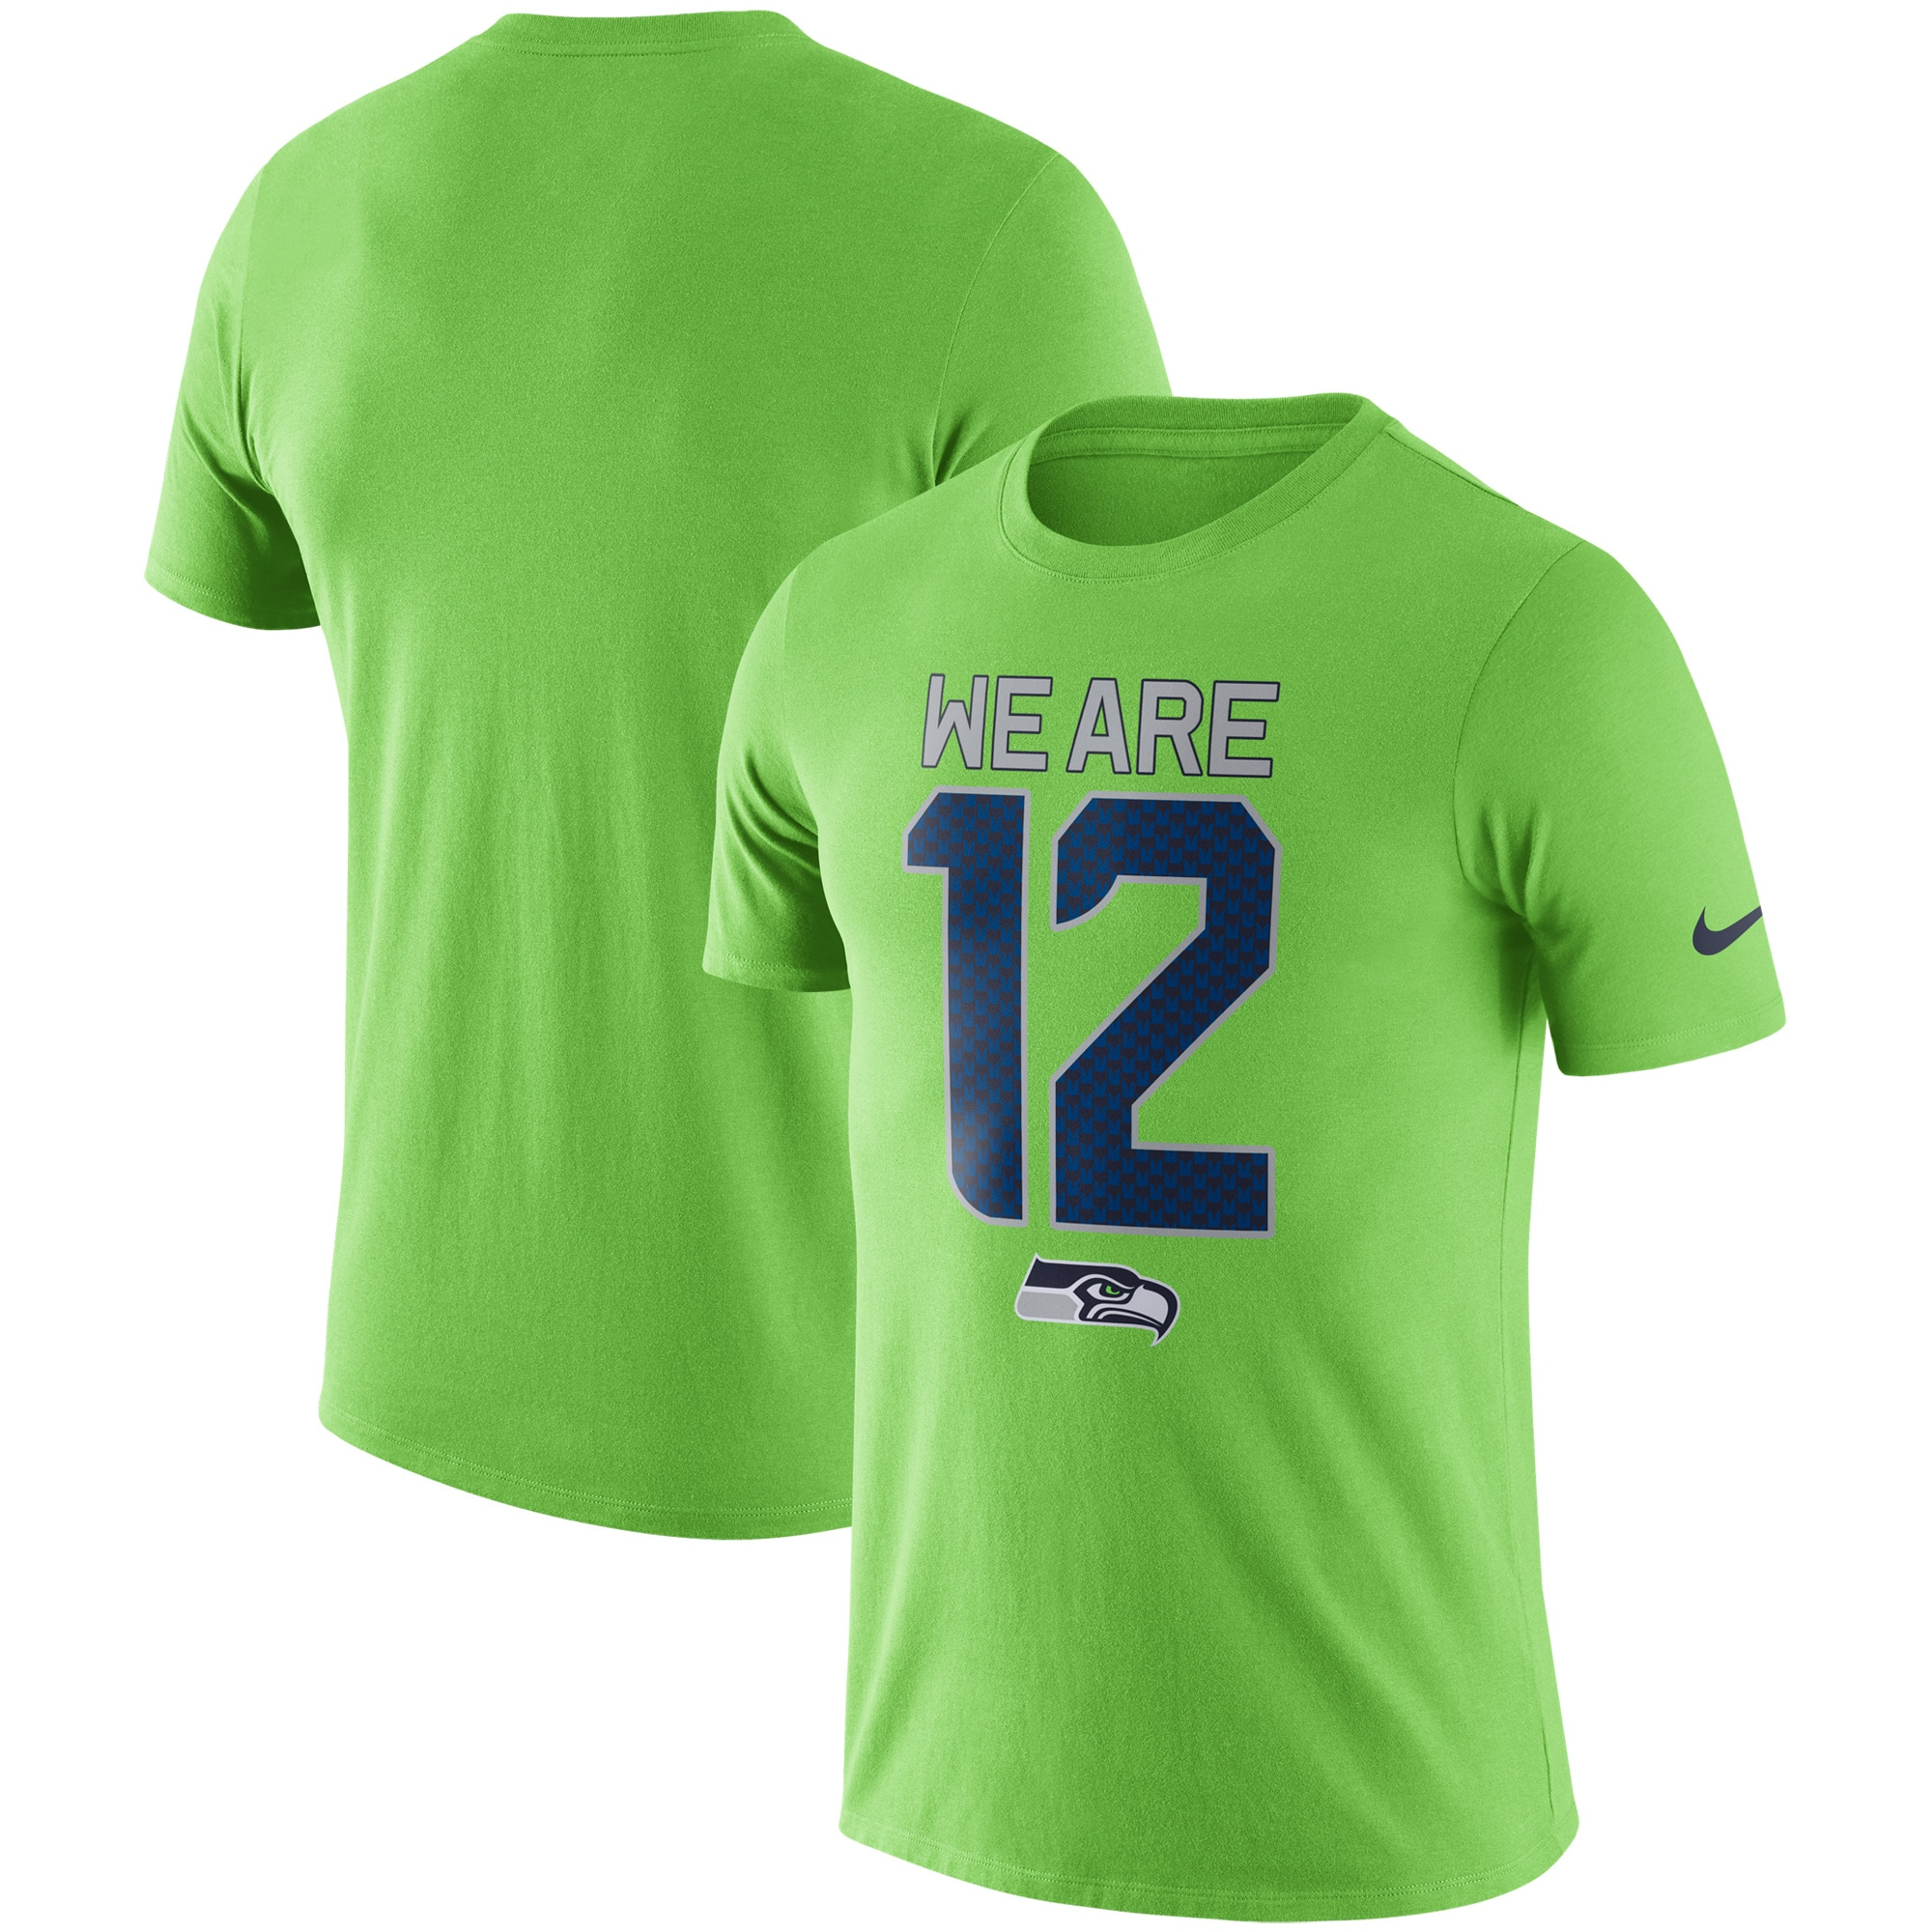 Seattle Seahawks Nike Local Lockup Performance T-Shirt - Neon Green